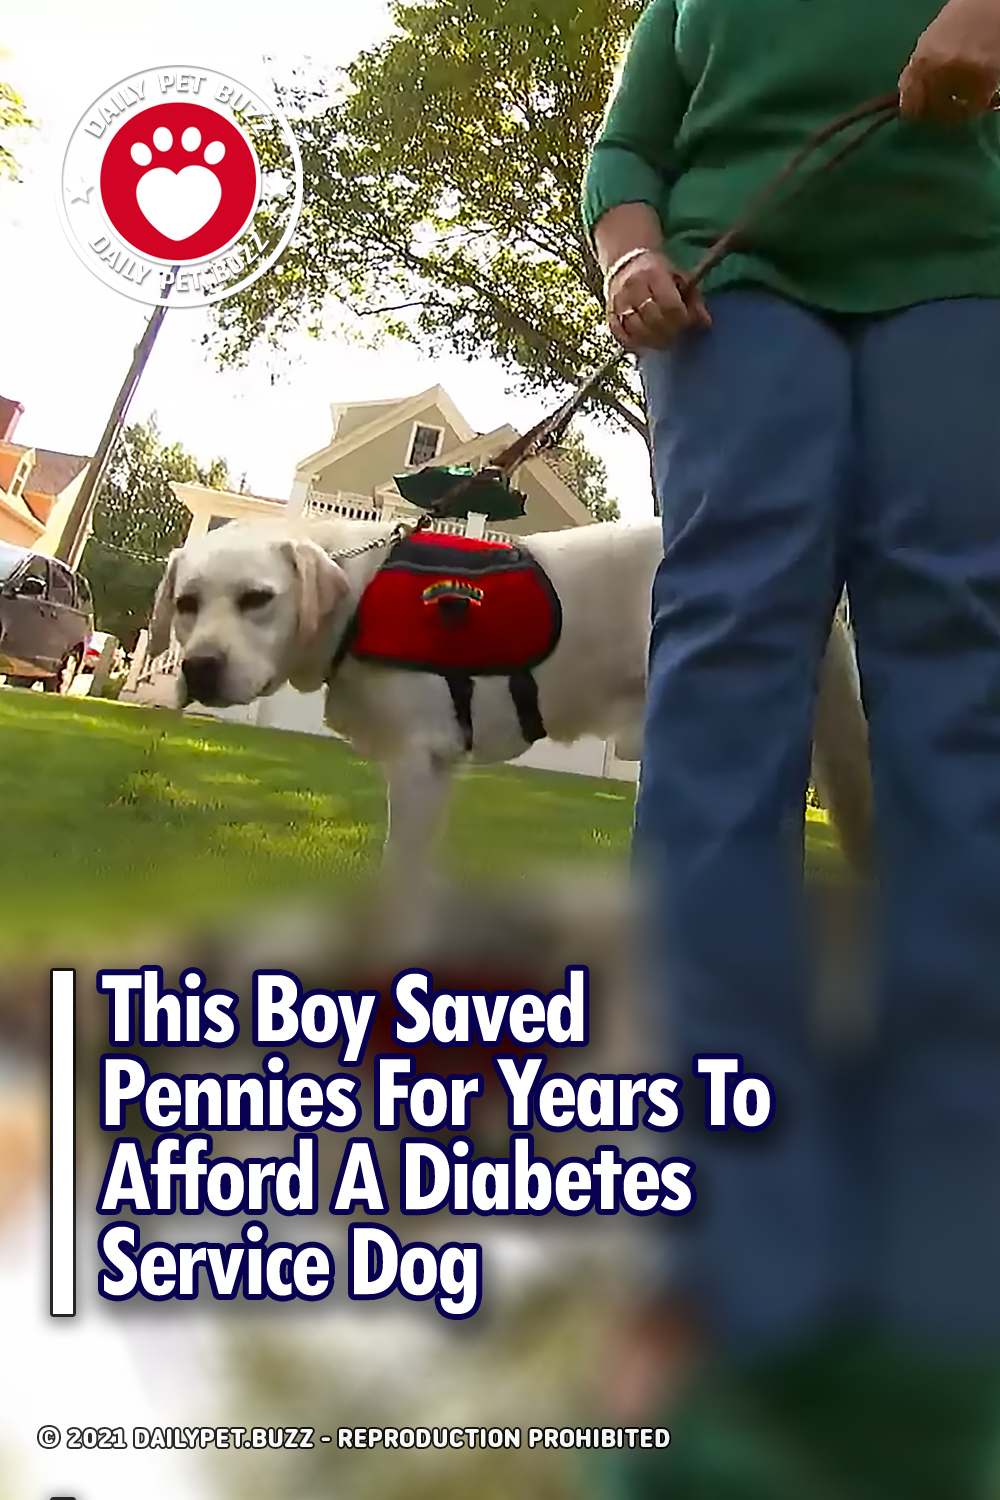 This Boy Saved Pennies For Years To Afford A Diabetes Service Dog